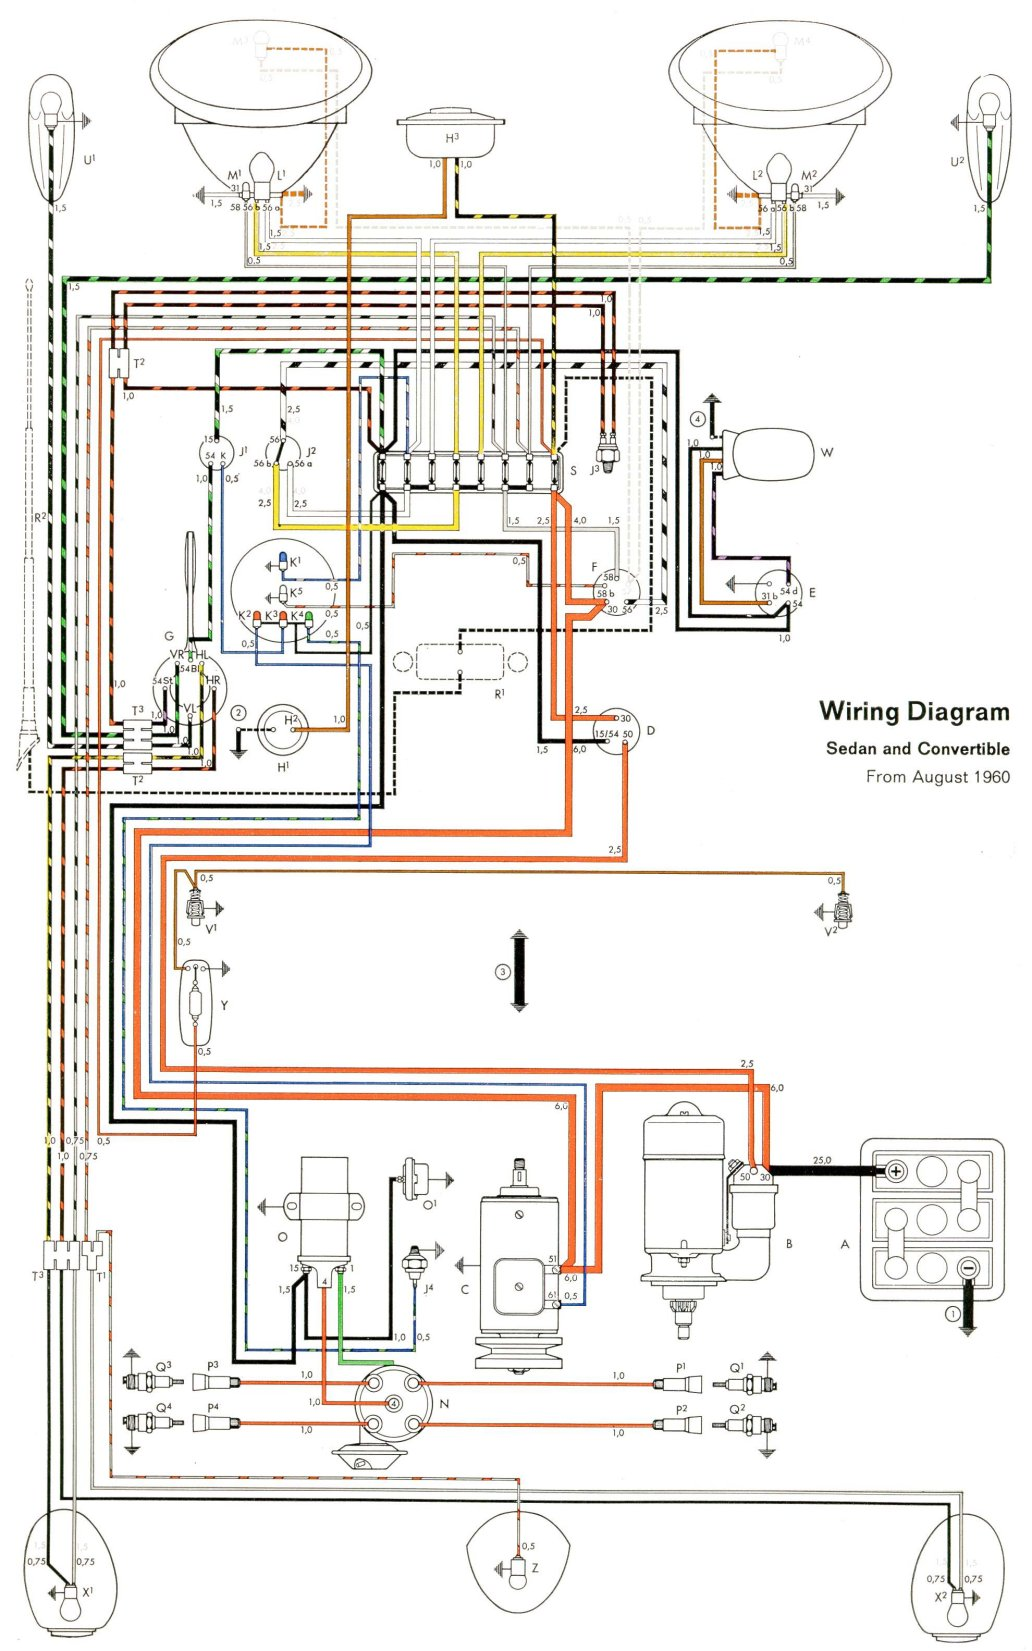 bug_61 1949 vw wiring diagram on 1949 download wirning diagrams 1965 vw beetle wiring diagram at mifinder.co